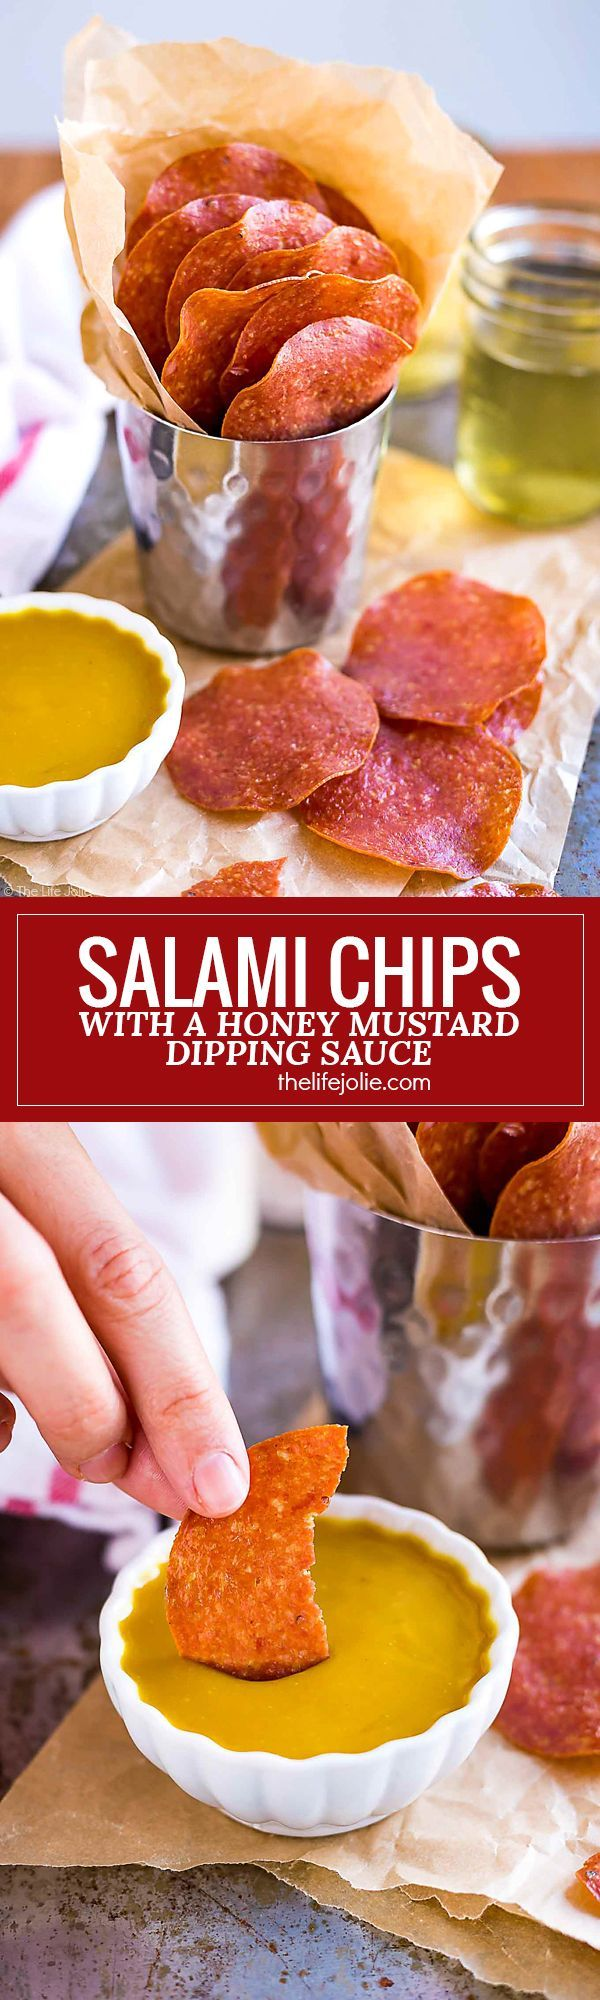 These Salami Chips are a seriously addictive appetizer recipe! They're super easy snacks to make and taste even better with a Honey Mustard dipping sauce. This is the perfect food to bring to parties and game day gatherings!